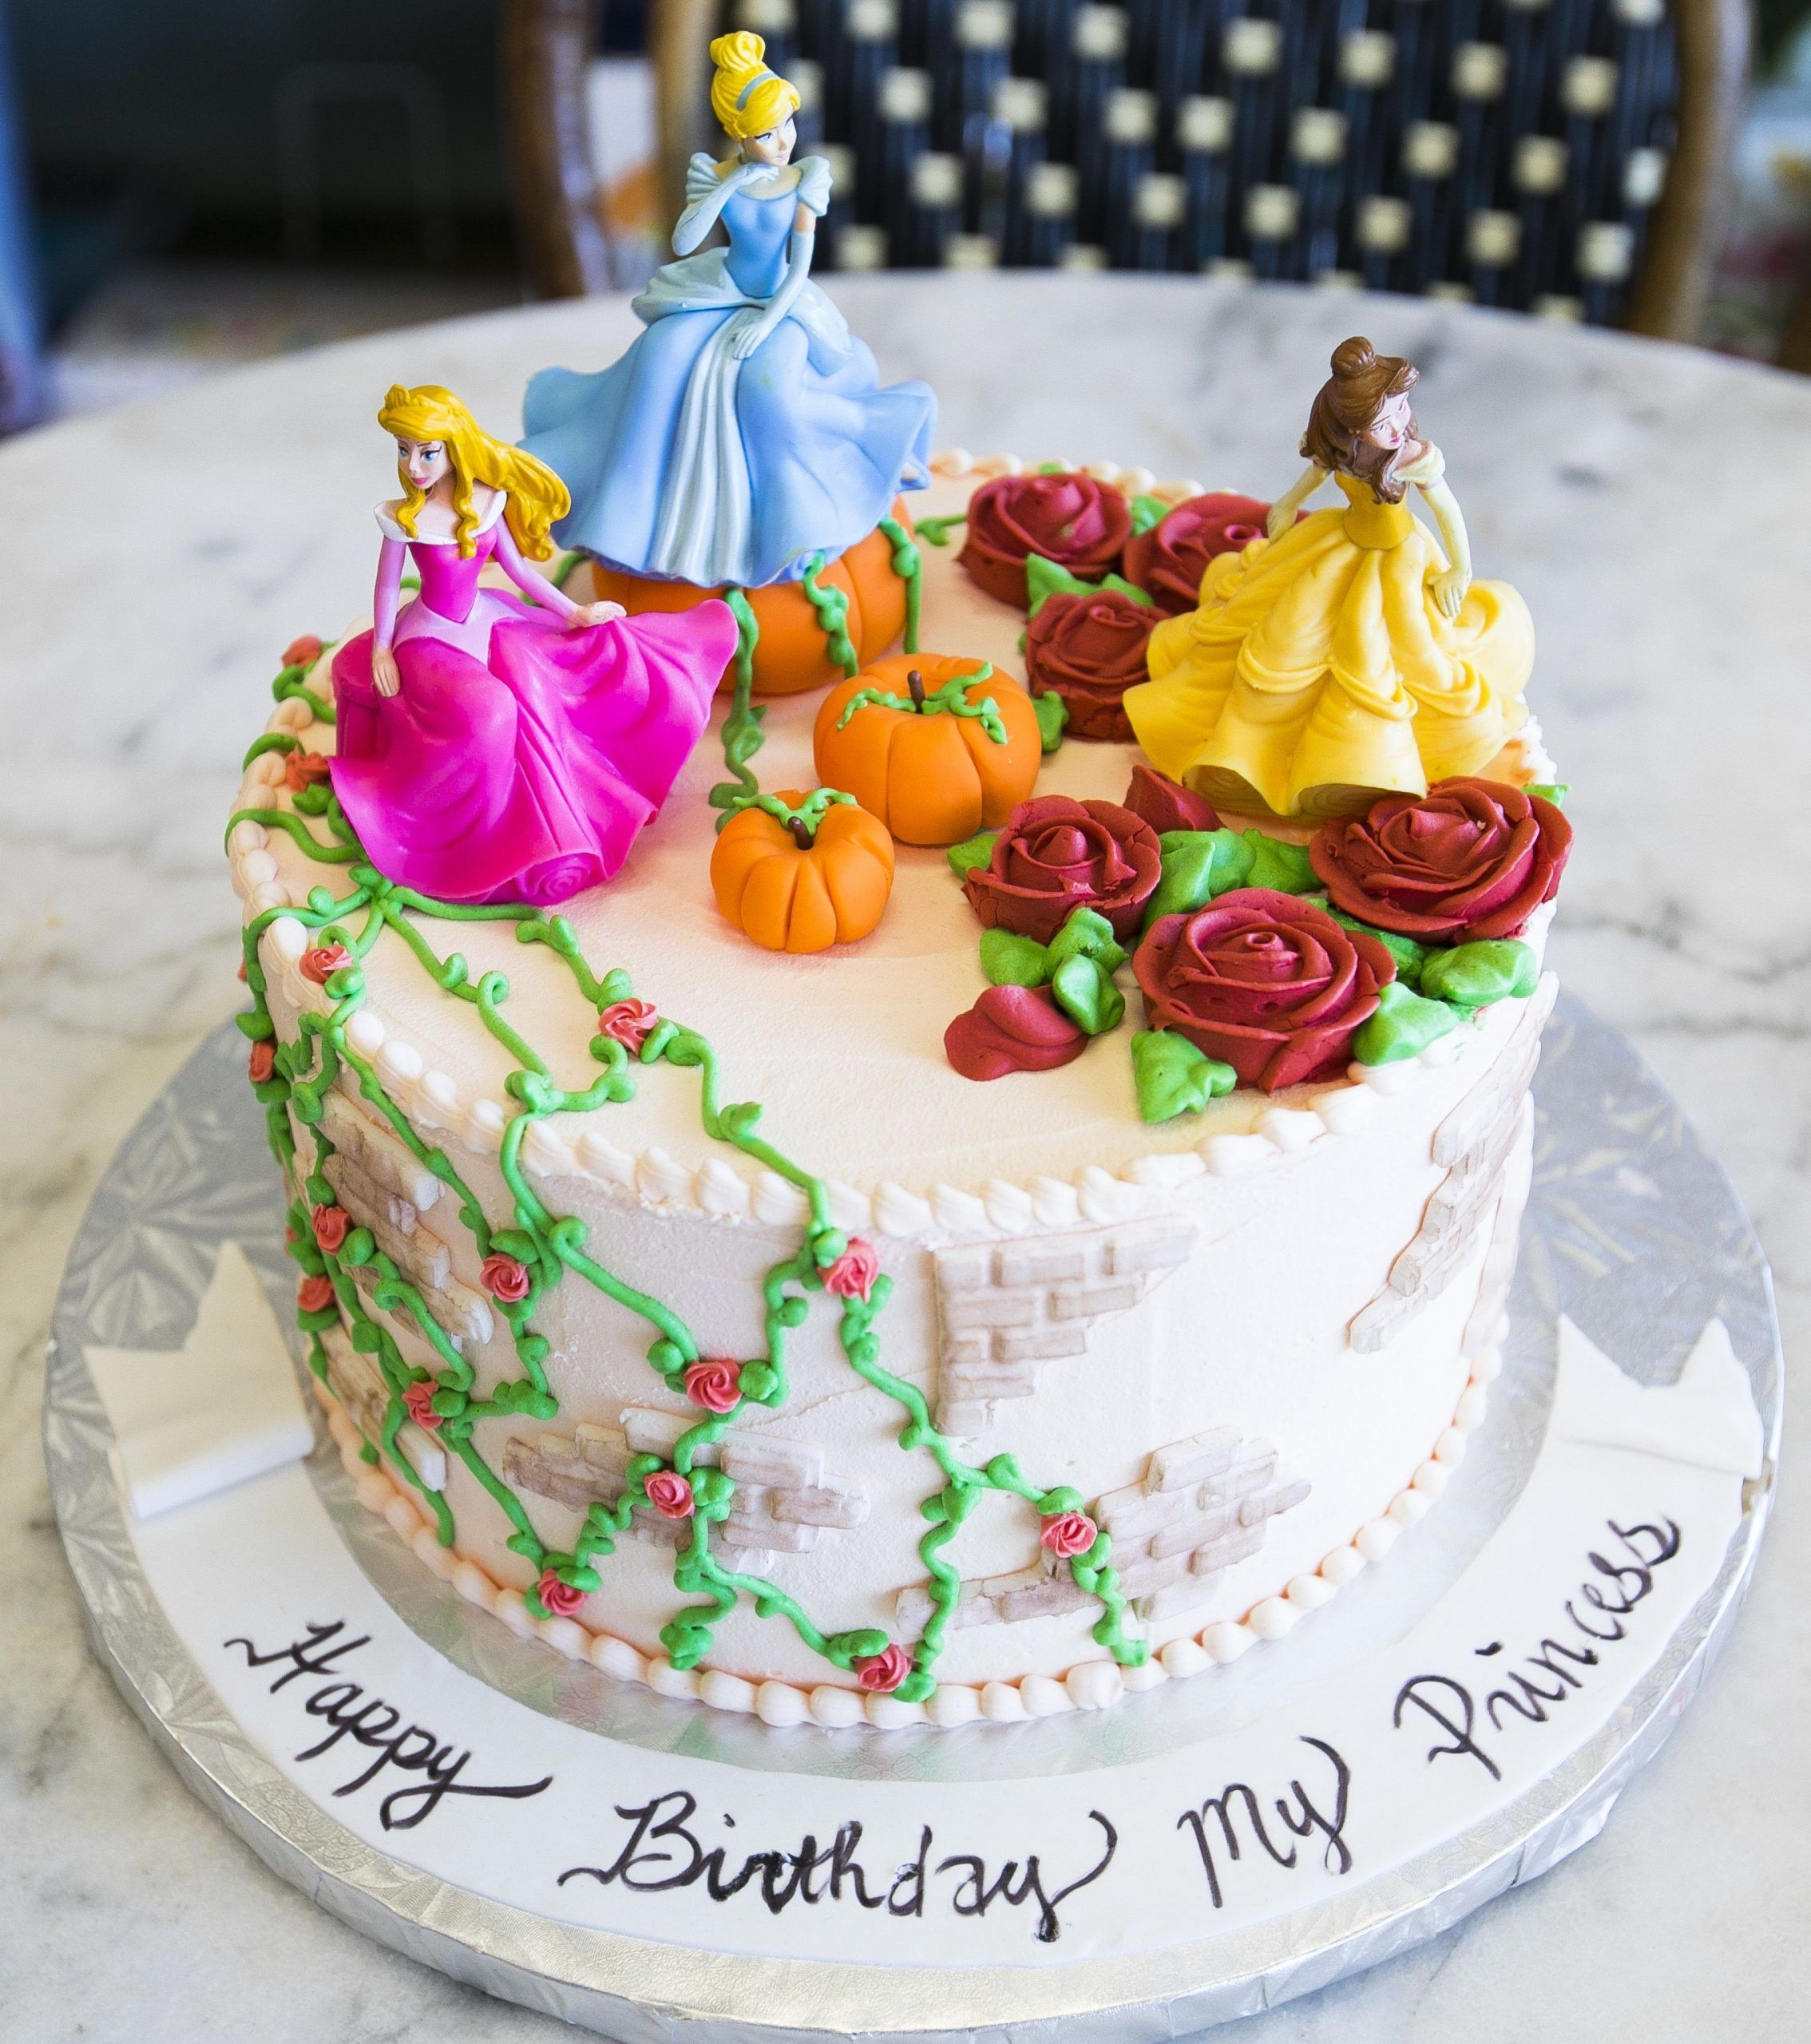 Birthday cake images for kids in 2020 disney princess